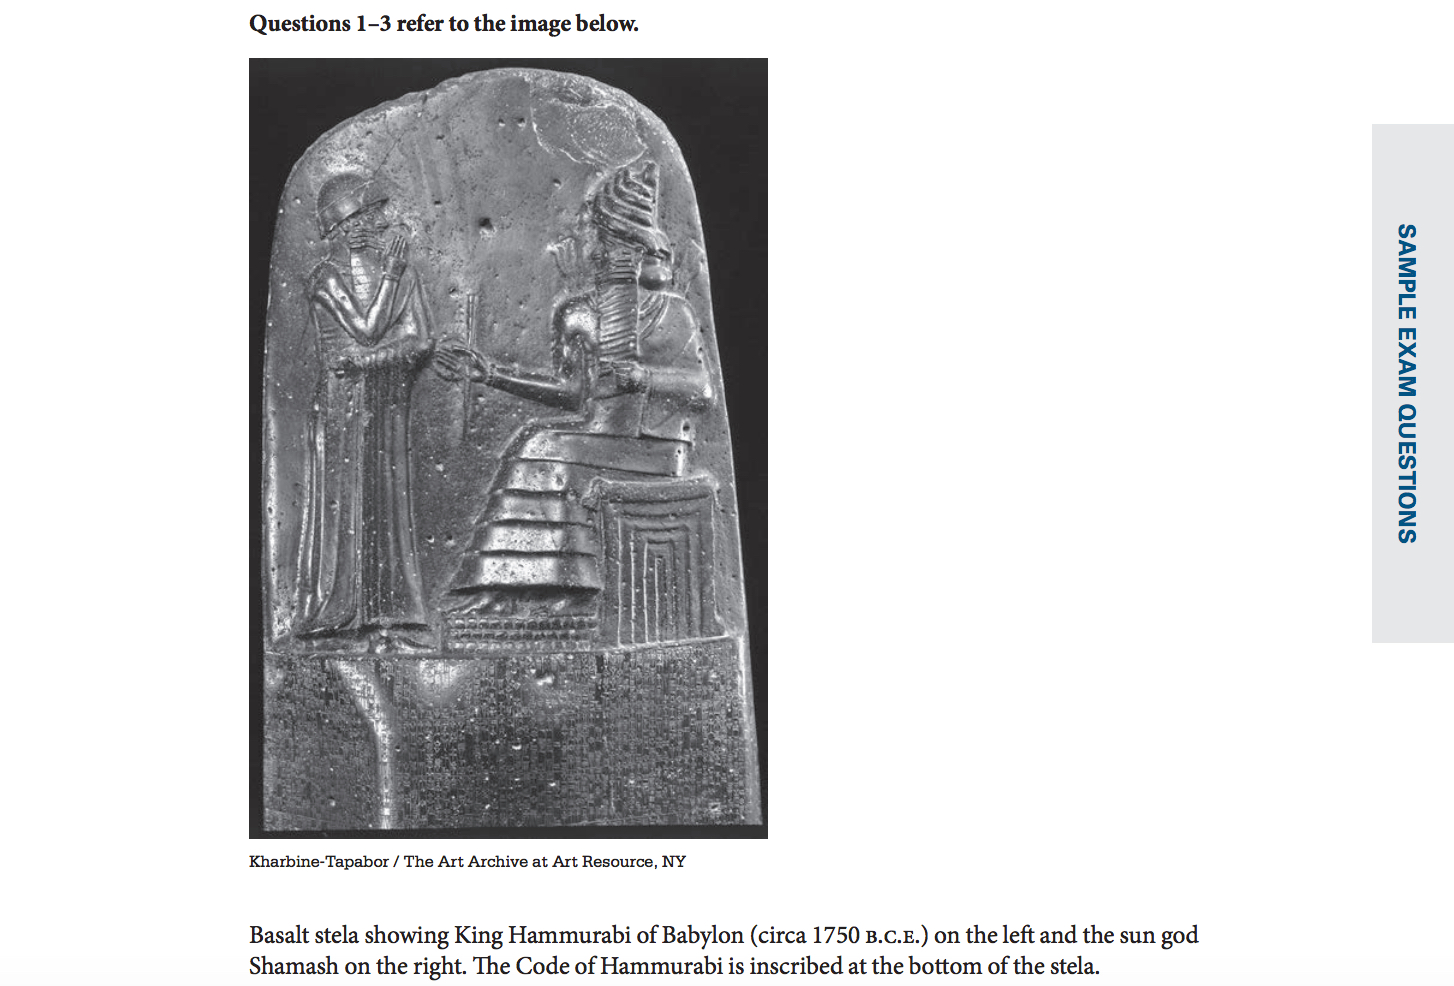 OK. So, each question will have a stimulus. Well, there it is. This one appears to be showing Hammurabi (yea, the law code guy). They will give you the stimulus (in this case an image) and a little description. What's next? The questions (2-5 questions based on the stimulus). For the answer key, scroll down.